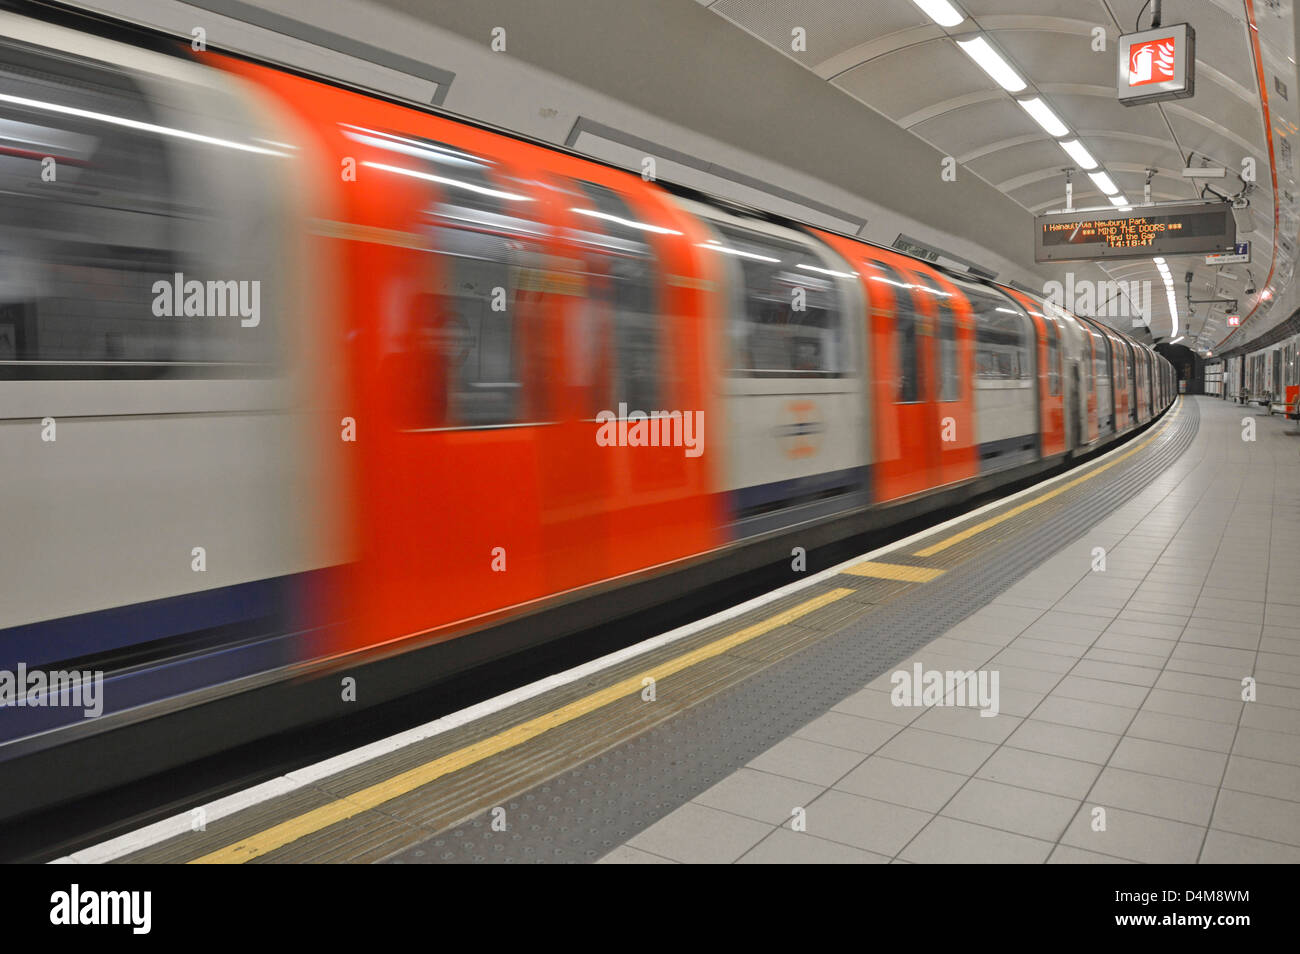 Empty platform on London Underground station with motion blur Central Line tube train departing  Shepherds Bush - Stock Image